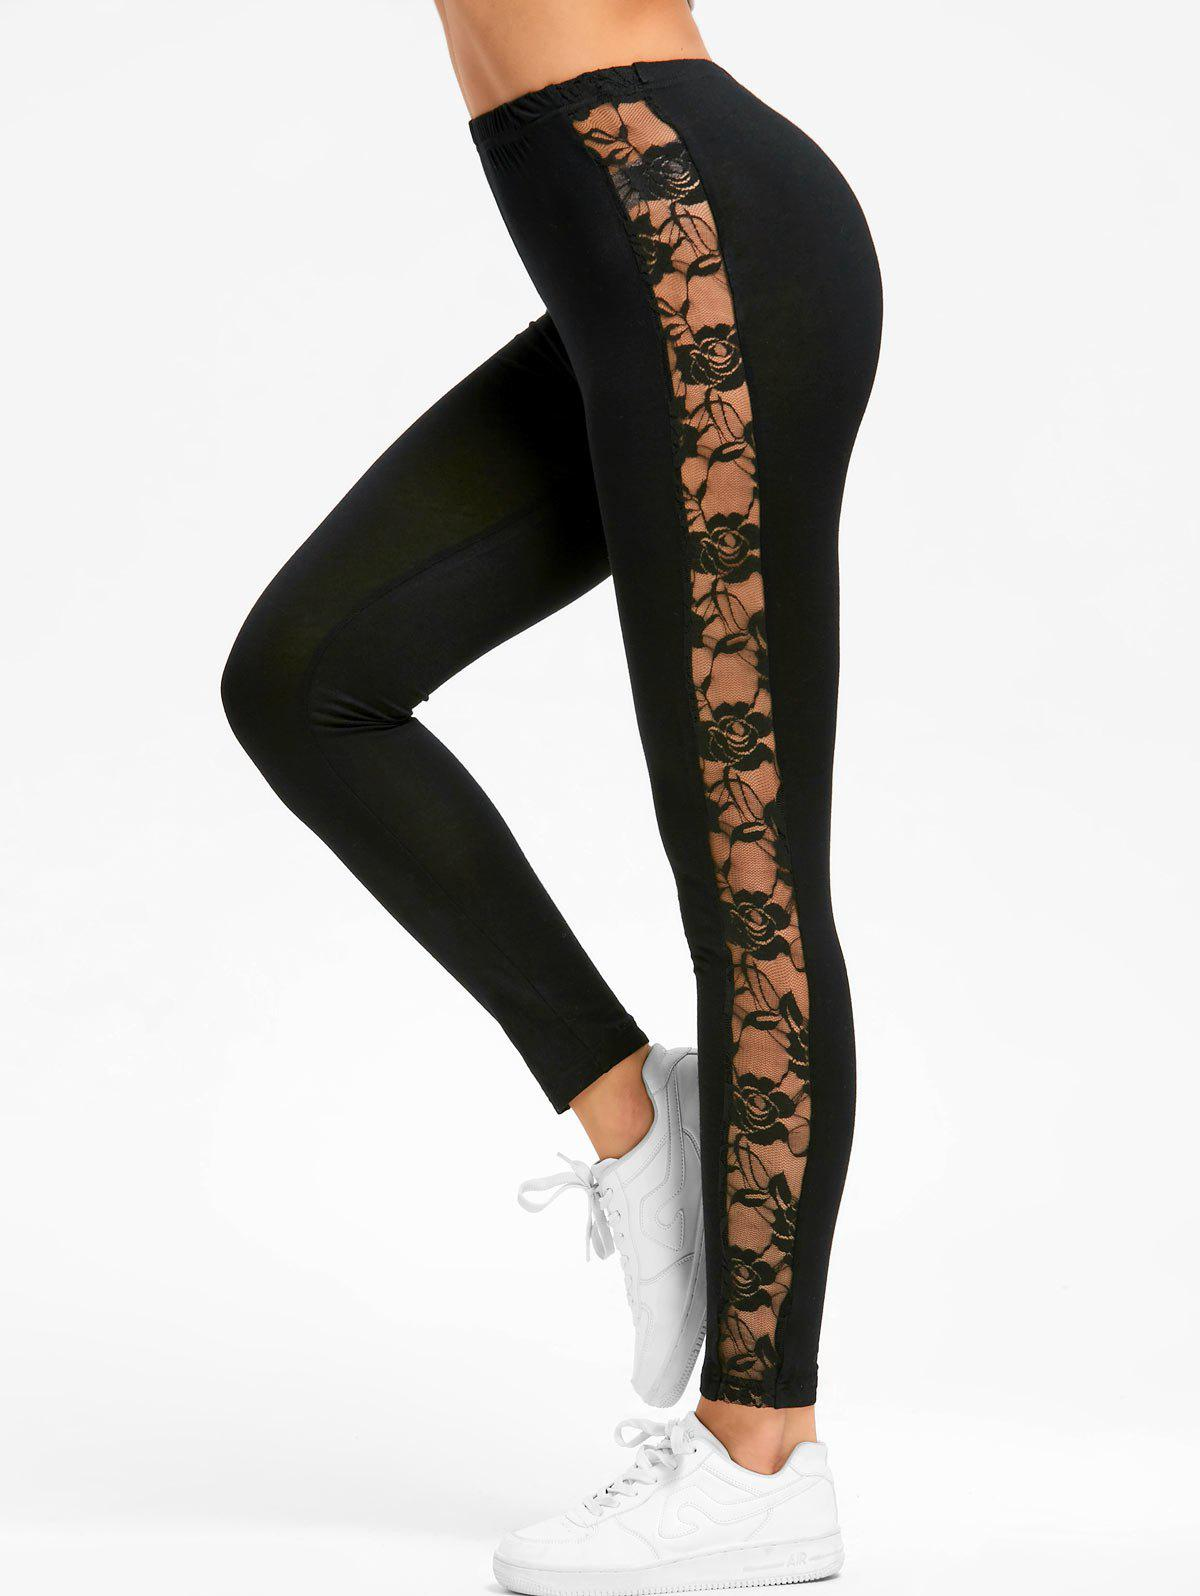 Lace Insert Sport LeggingsWOMEN<br><br>Size: 2XL; Color: BLACK; Style: Casual; Length: Normal; Material: Rayon,Spandex; Fit Type: Skinny; Waist Type: Mid; Closure Type: Elastic Waist; Pattern Type: Floral; Embellishment: Lace; Pant Style: Pencil Pants; Weight: 0.2000kg; Package Contents: 1 x Leggings;